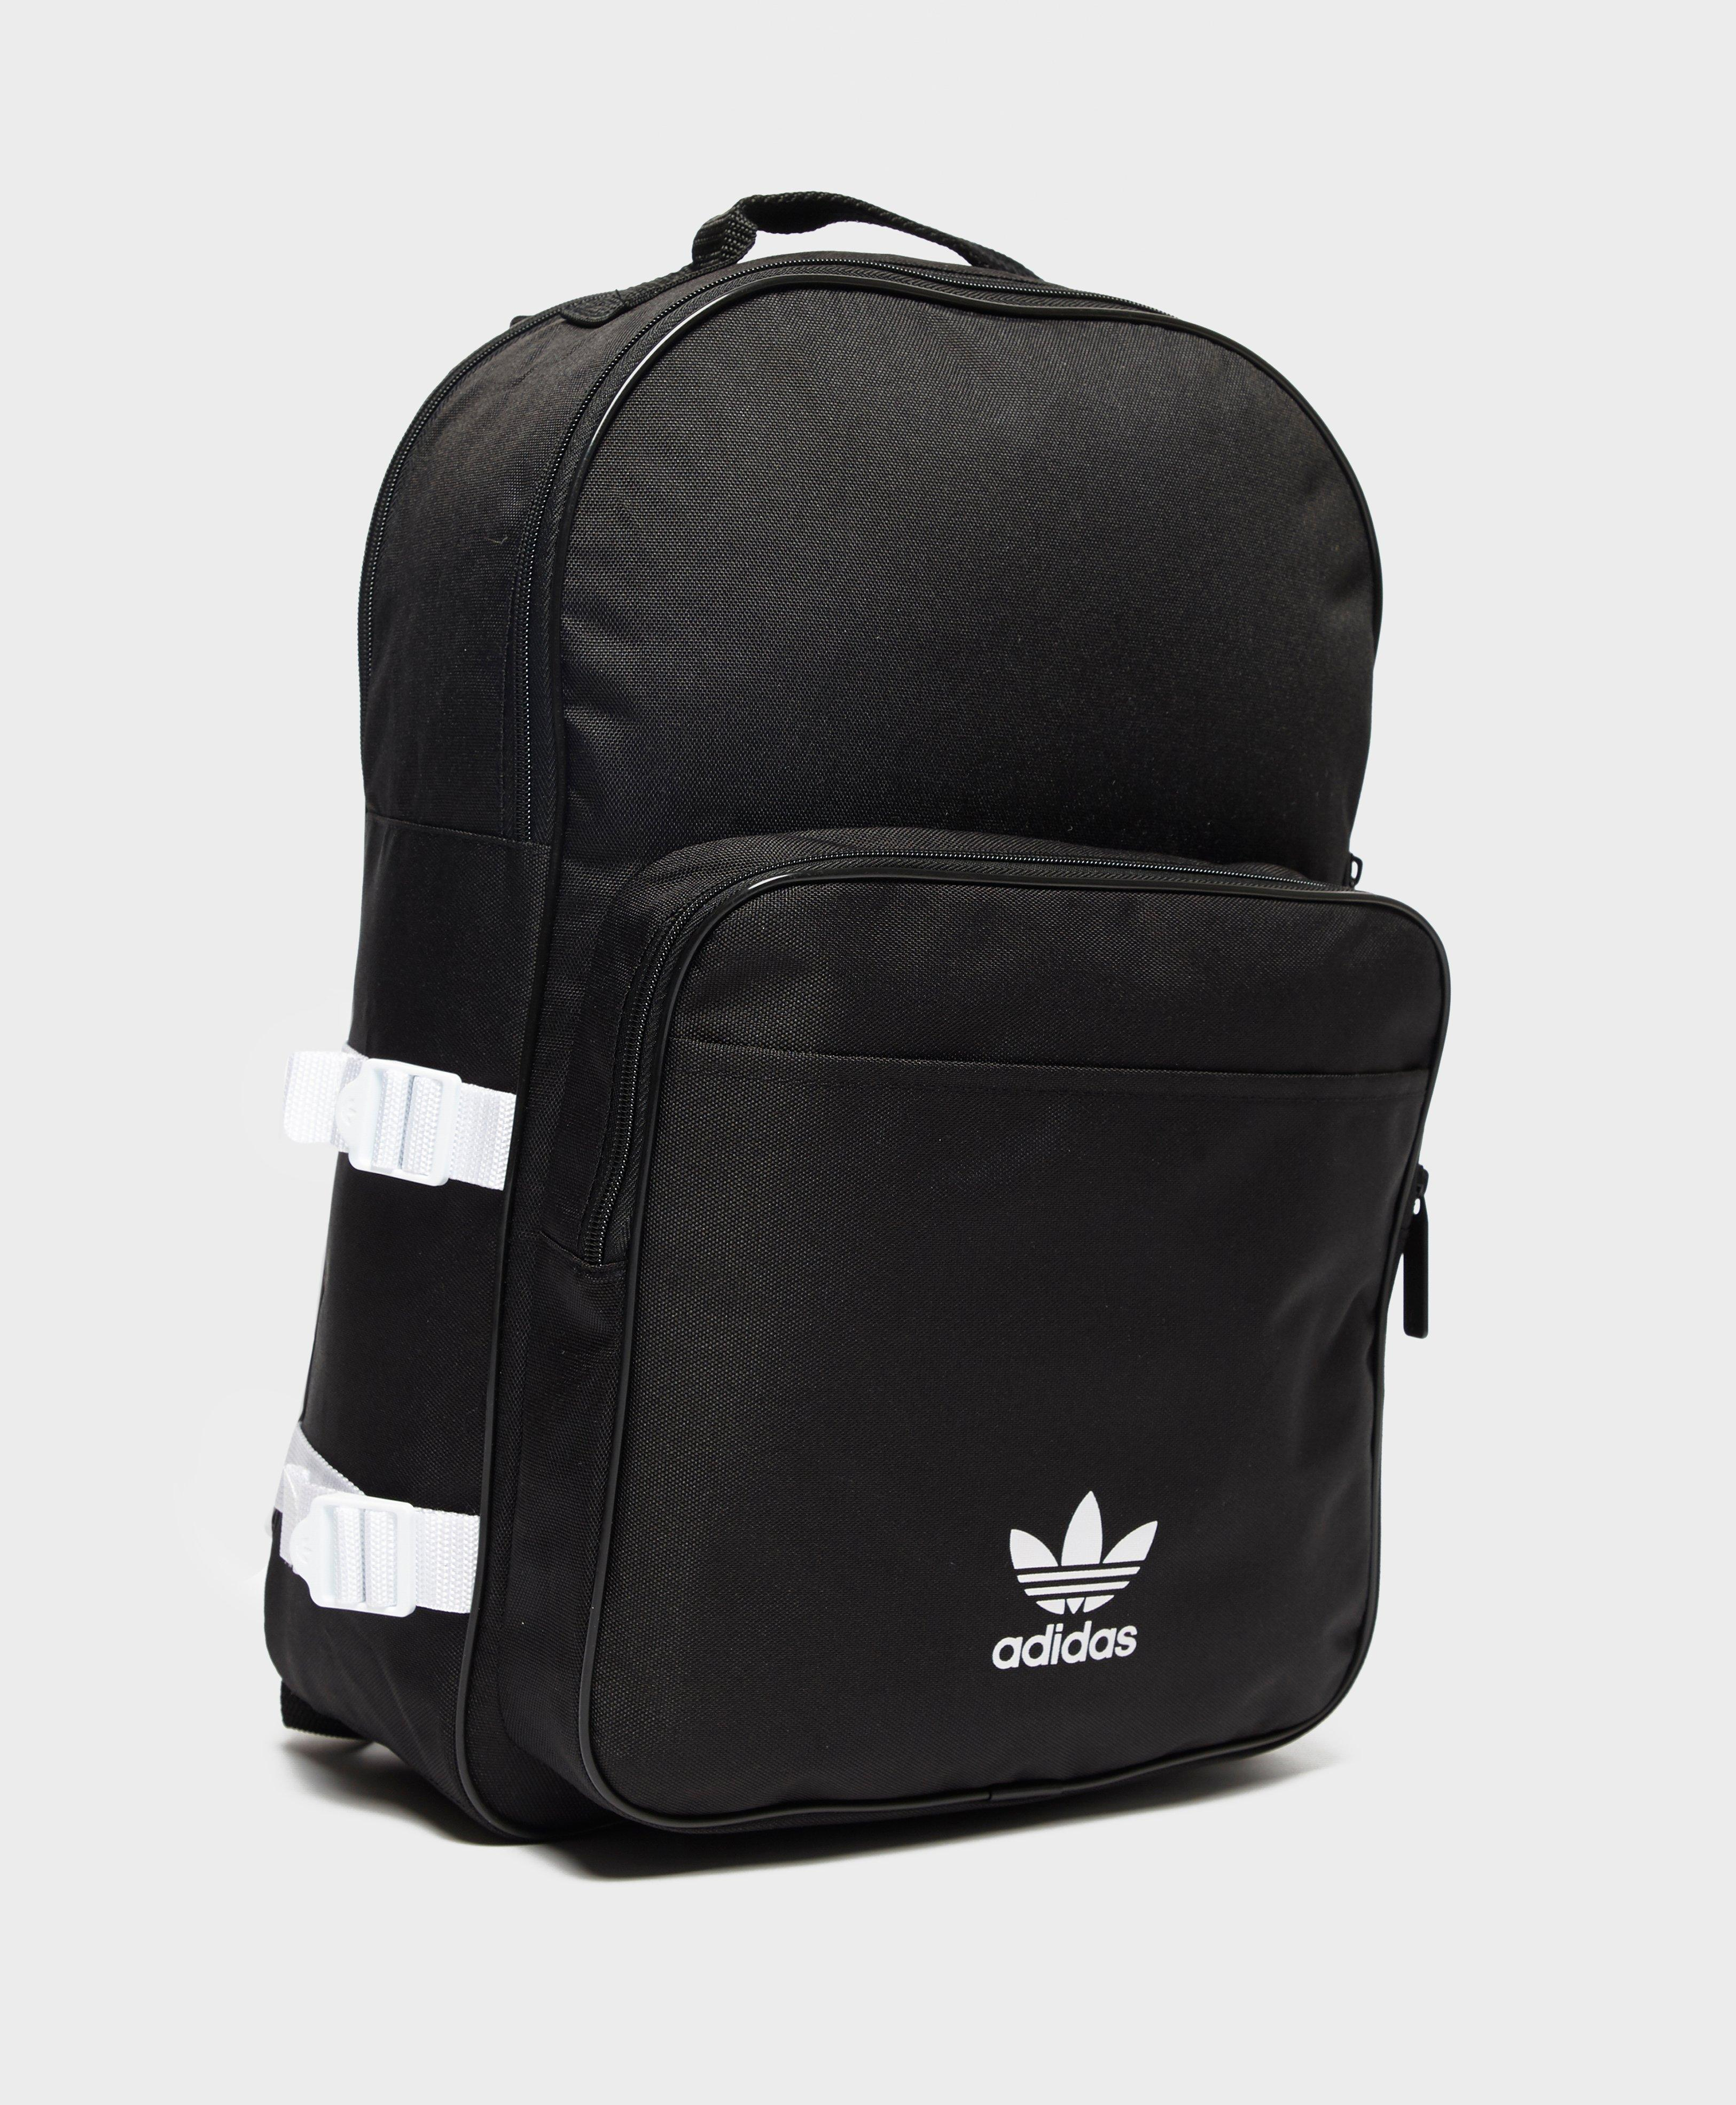 a0e5548a74 adidas Originals Essential Backpack in Black for Men - Lyst